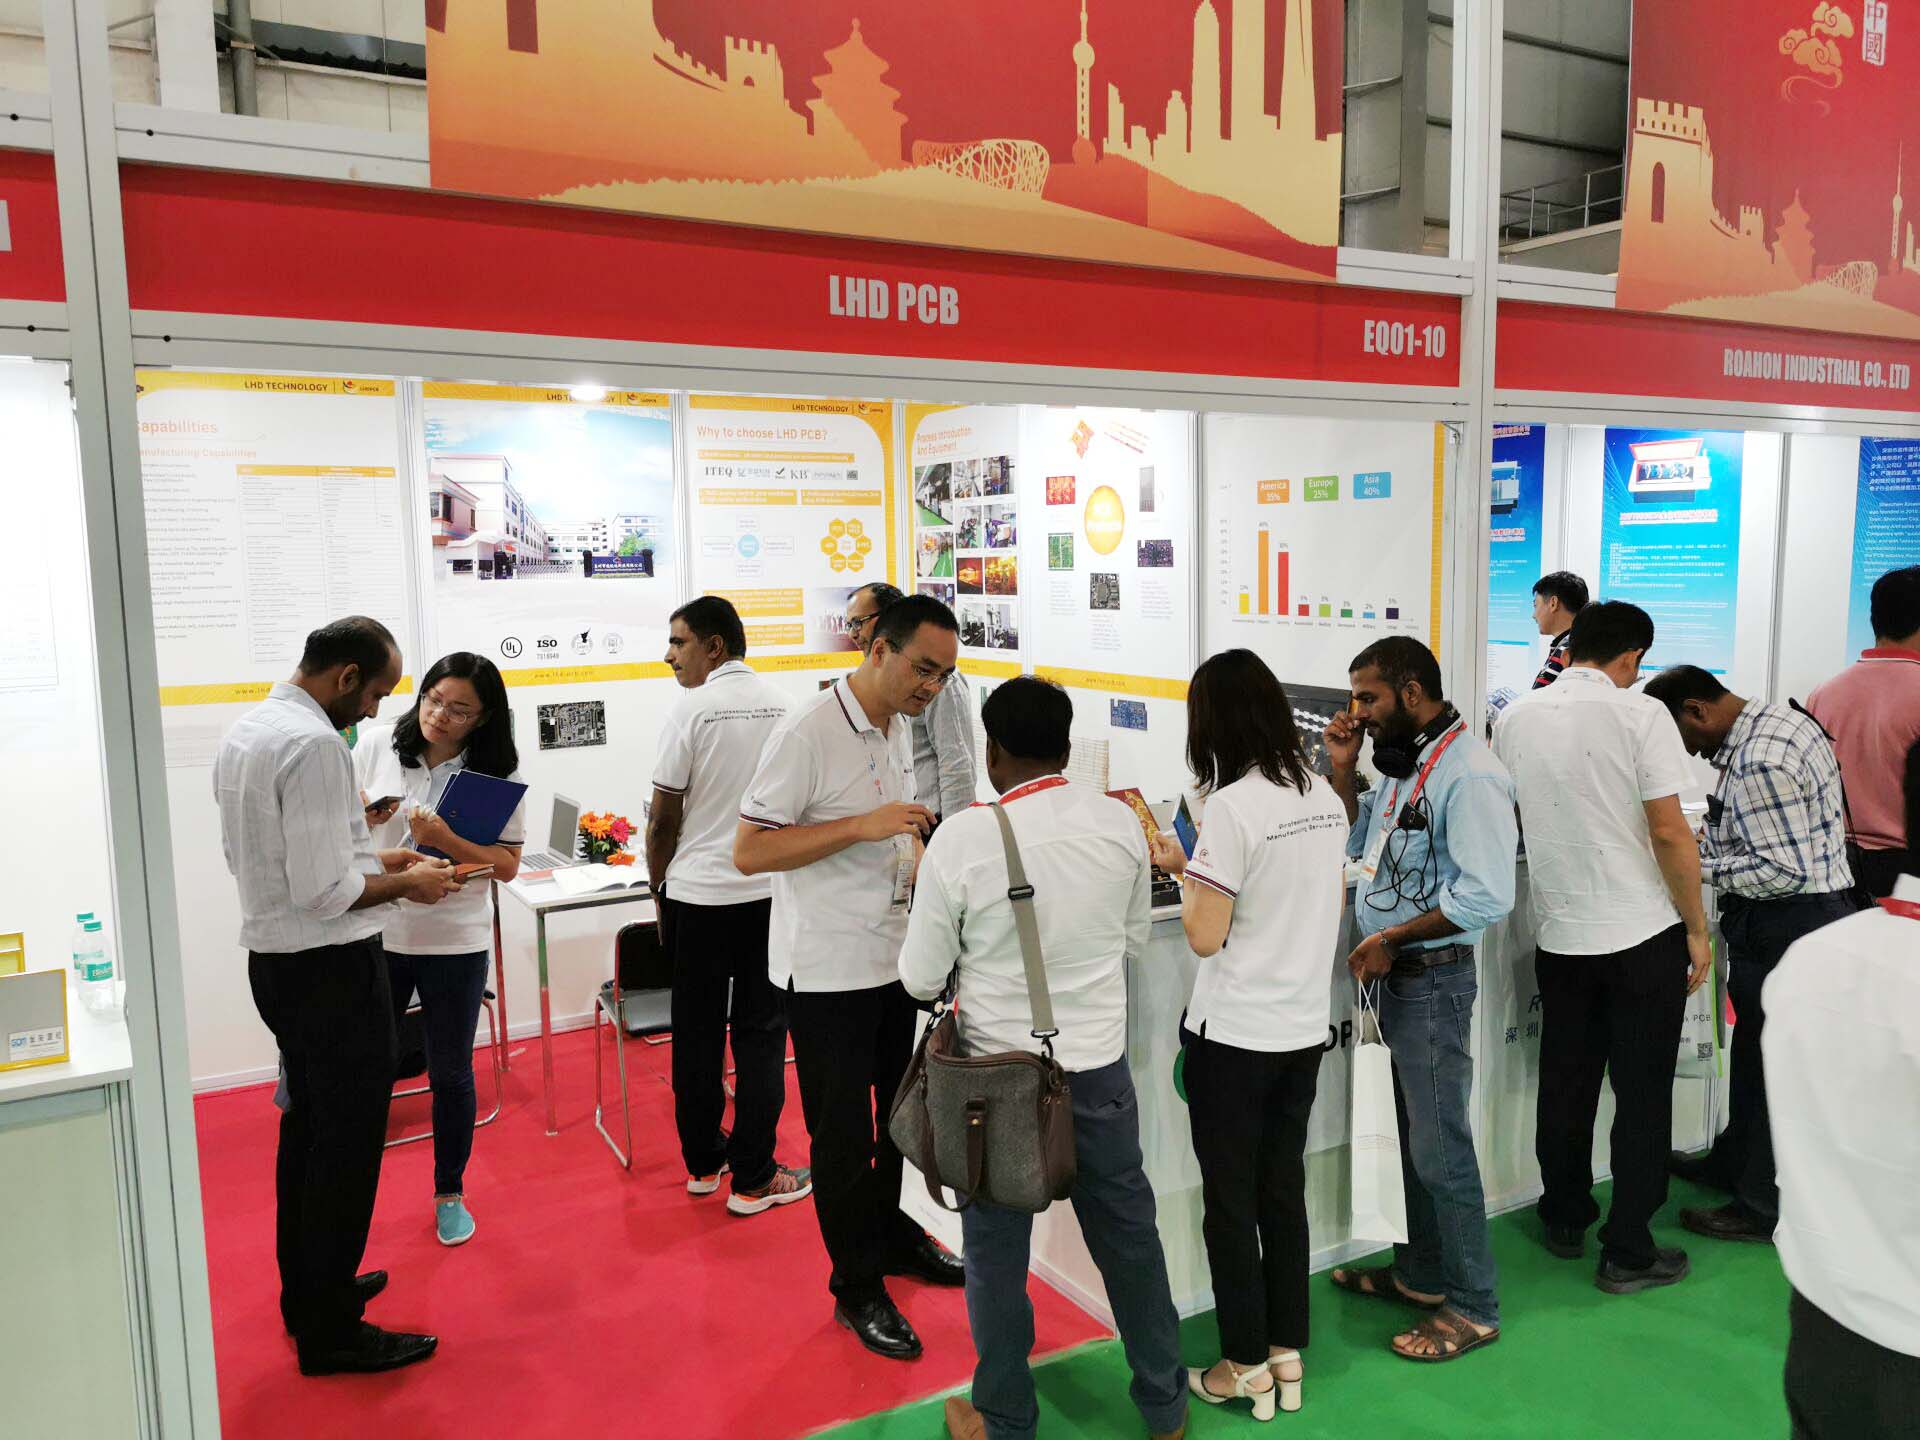 Fantastic IPCA Expo 2019 Exhibition---LHDPCB